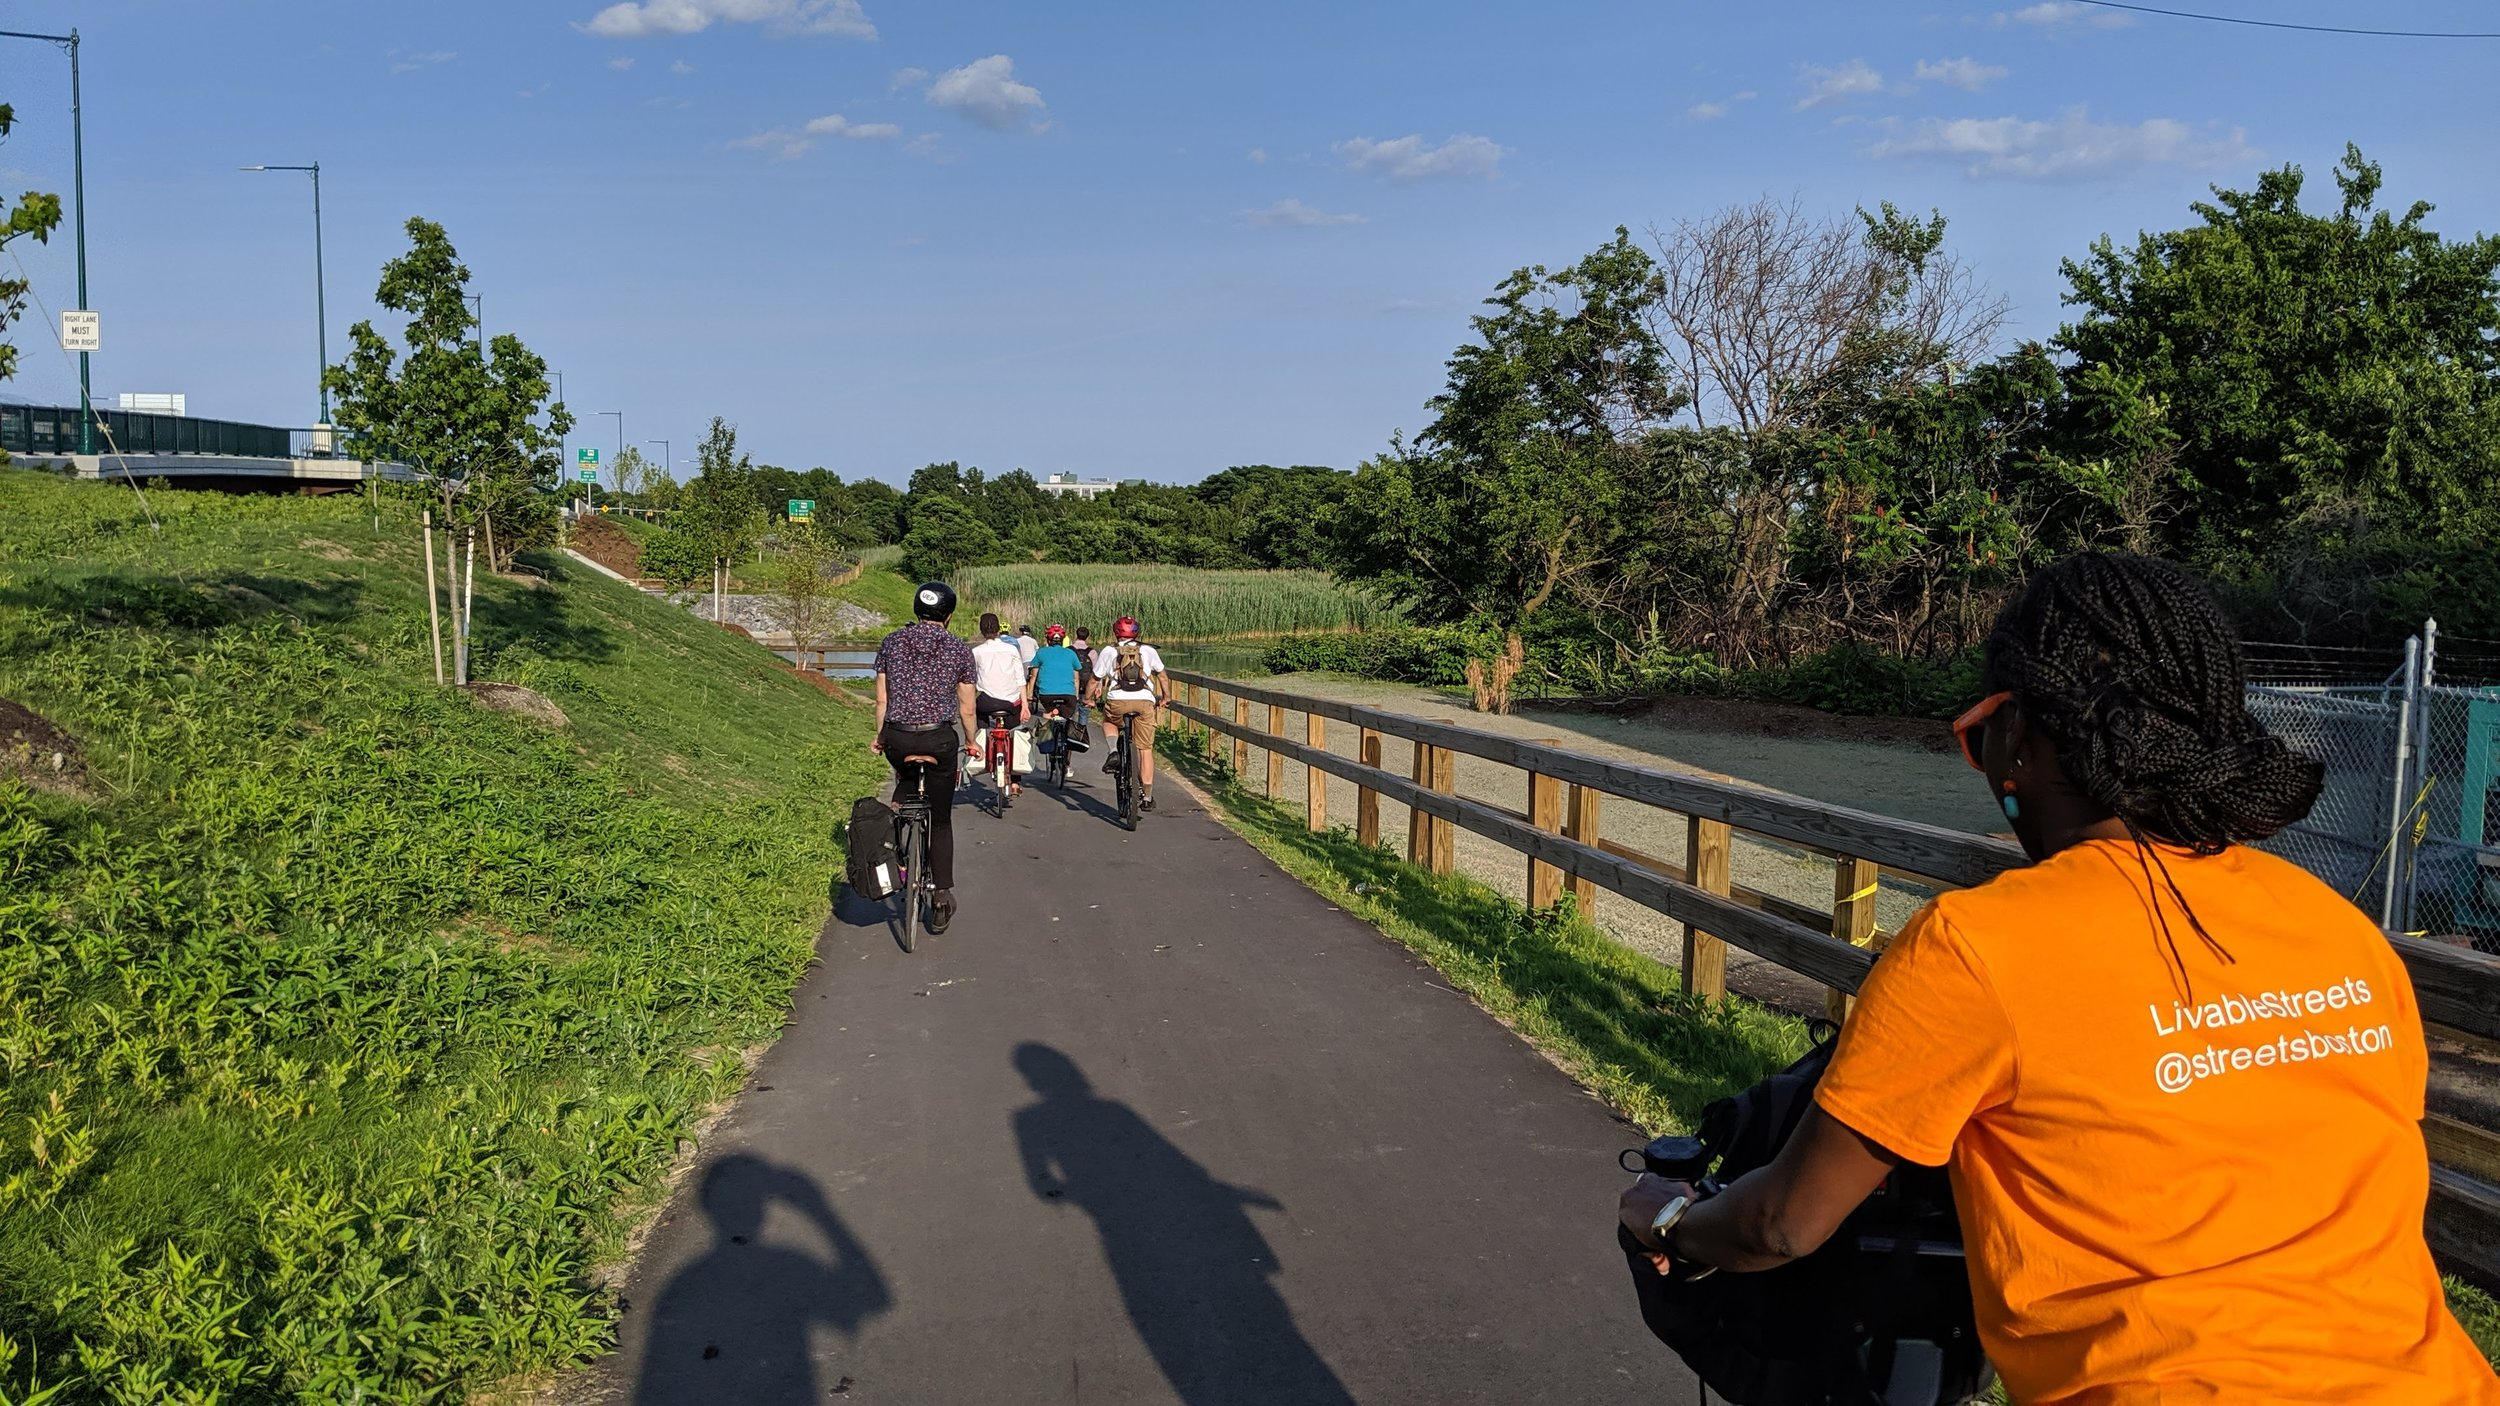 Here's our group at the end of the Wellington Greenway on the Malden River. The last 1/4 mile of this path is designed and permitted, and will connect to the new underpass--so you can stay along river and not cross through parking lots! - Medford